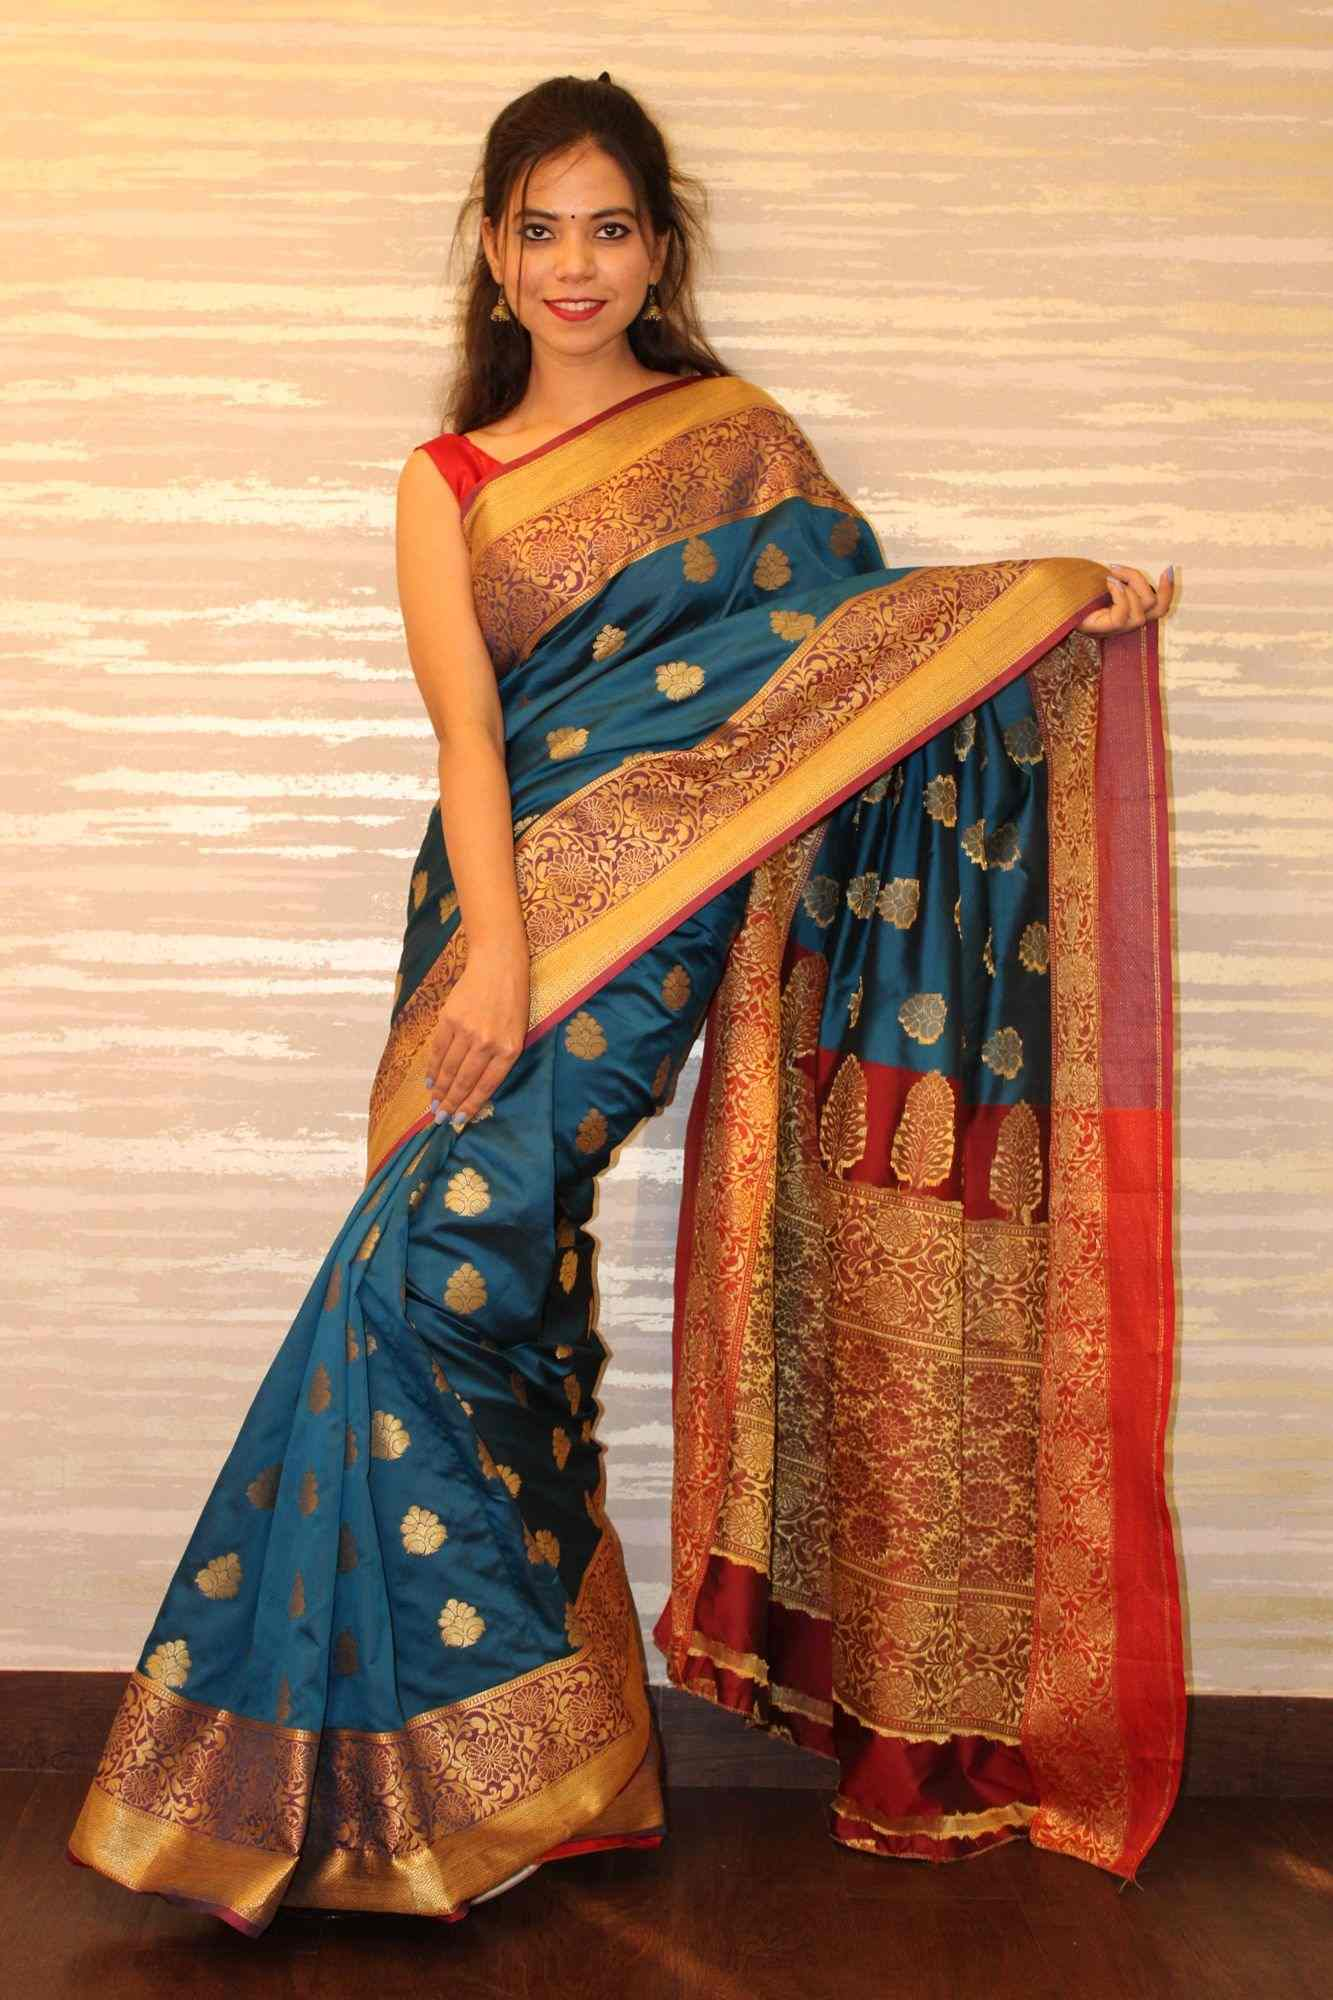 Turquoise blue kanchipuram wrap in 1 minute saree